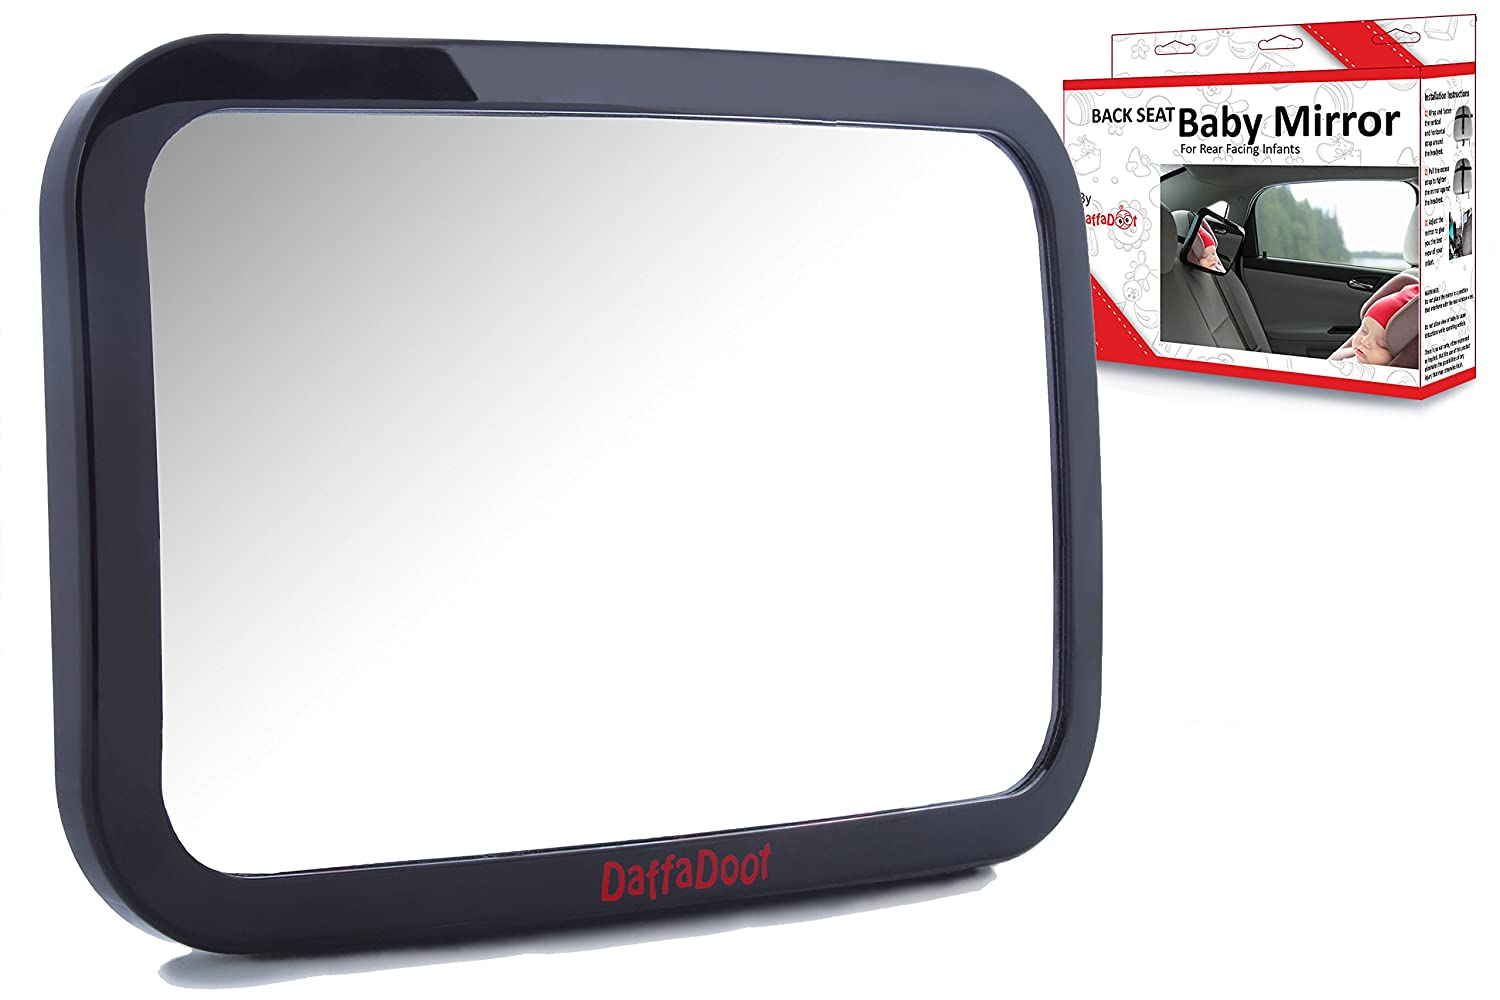 Baby Car Mirror - Crystal Clear Rear Facing Baby Mirror - Safety Certified & Crash Tested - Shatterproof Back Seat Baby Mirror - Gorgeous Gift Box DaffaDoot MIR42241